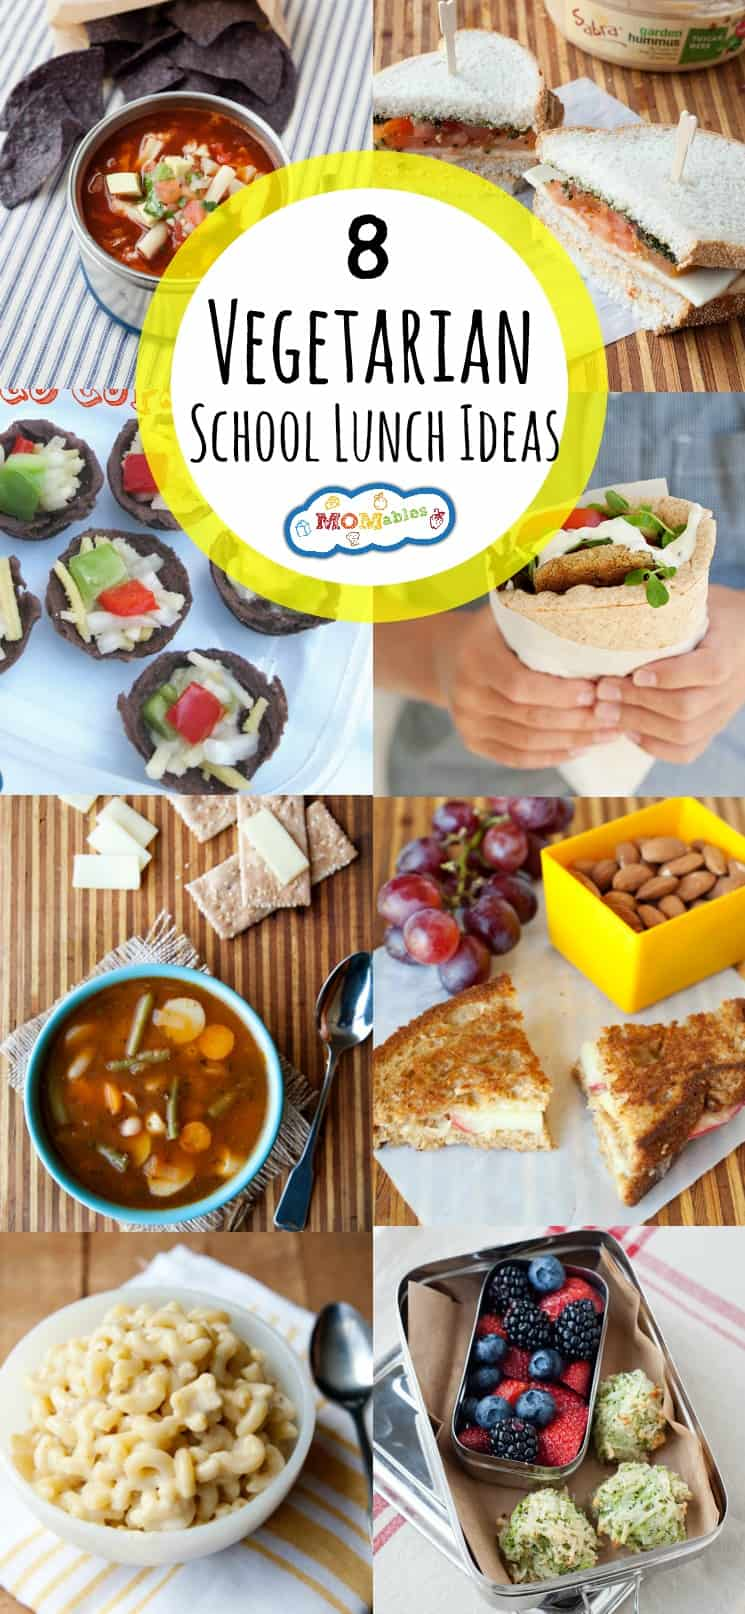 8 vegetarian school lunch ideas - momables